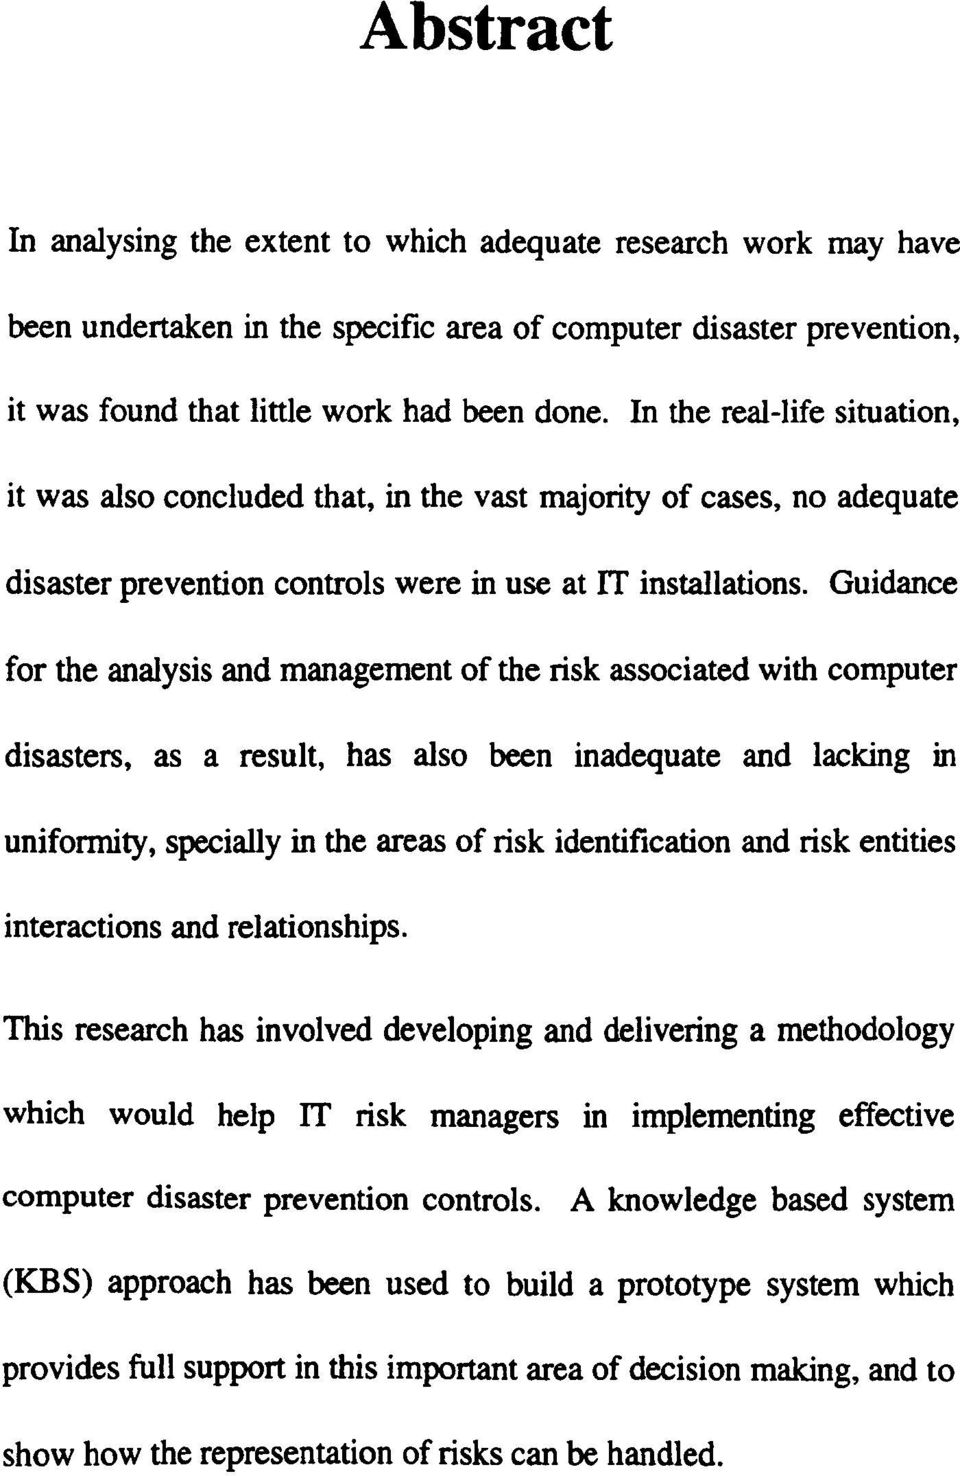 Guidance for the analysis and management of the risk associated with computer disasters, as a result, has also been inadequate and lacking in uniformity, specially in the areas of risk identification